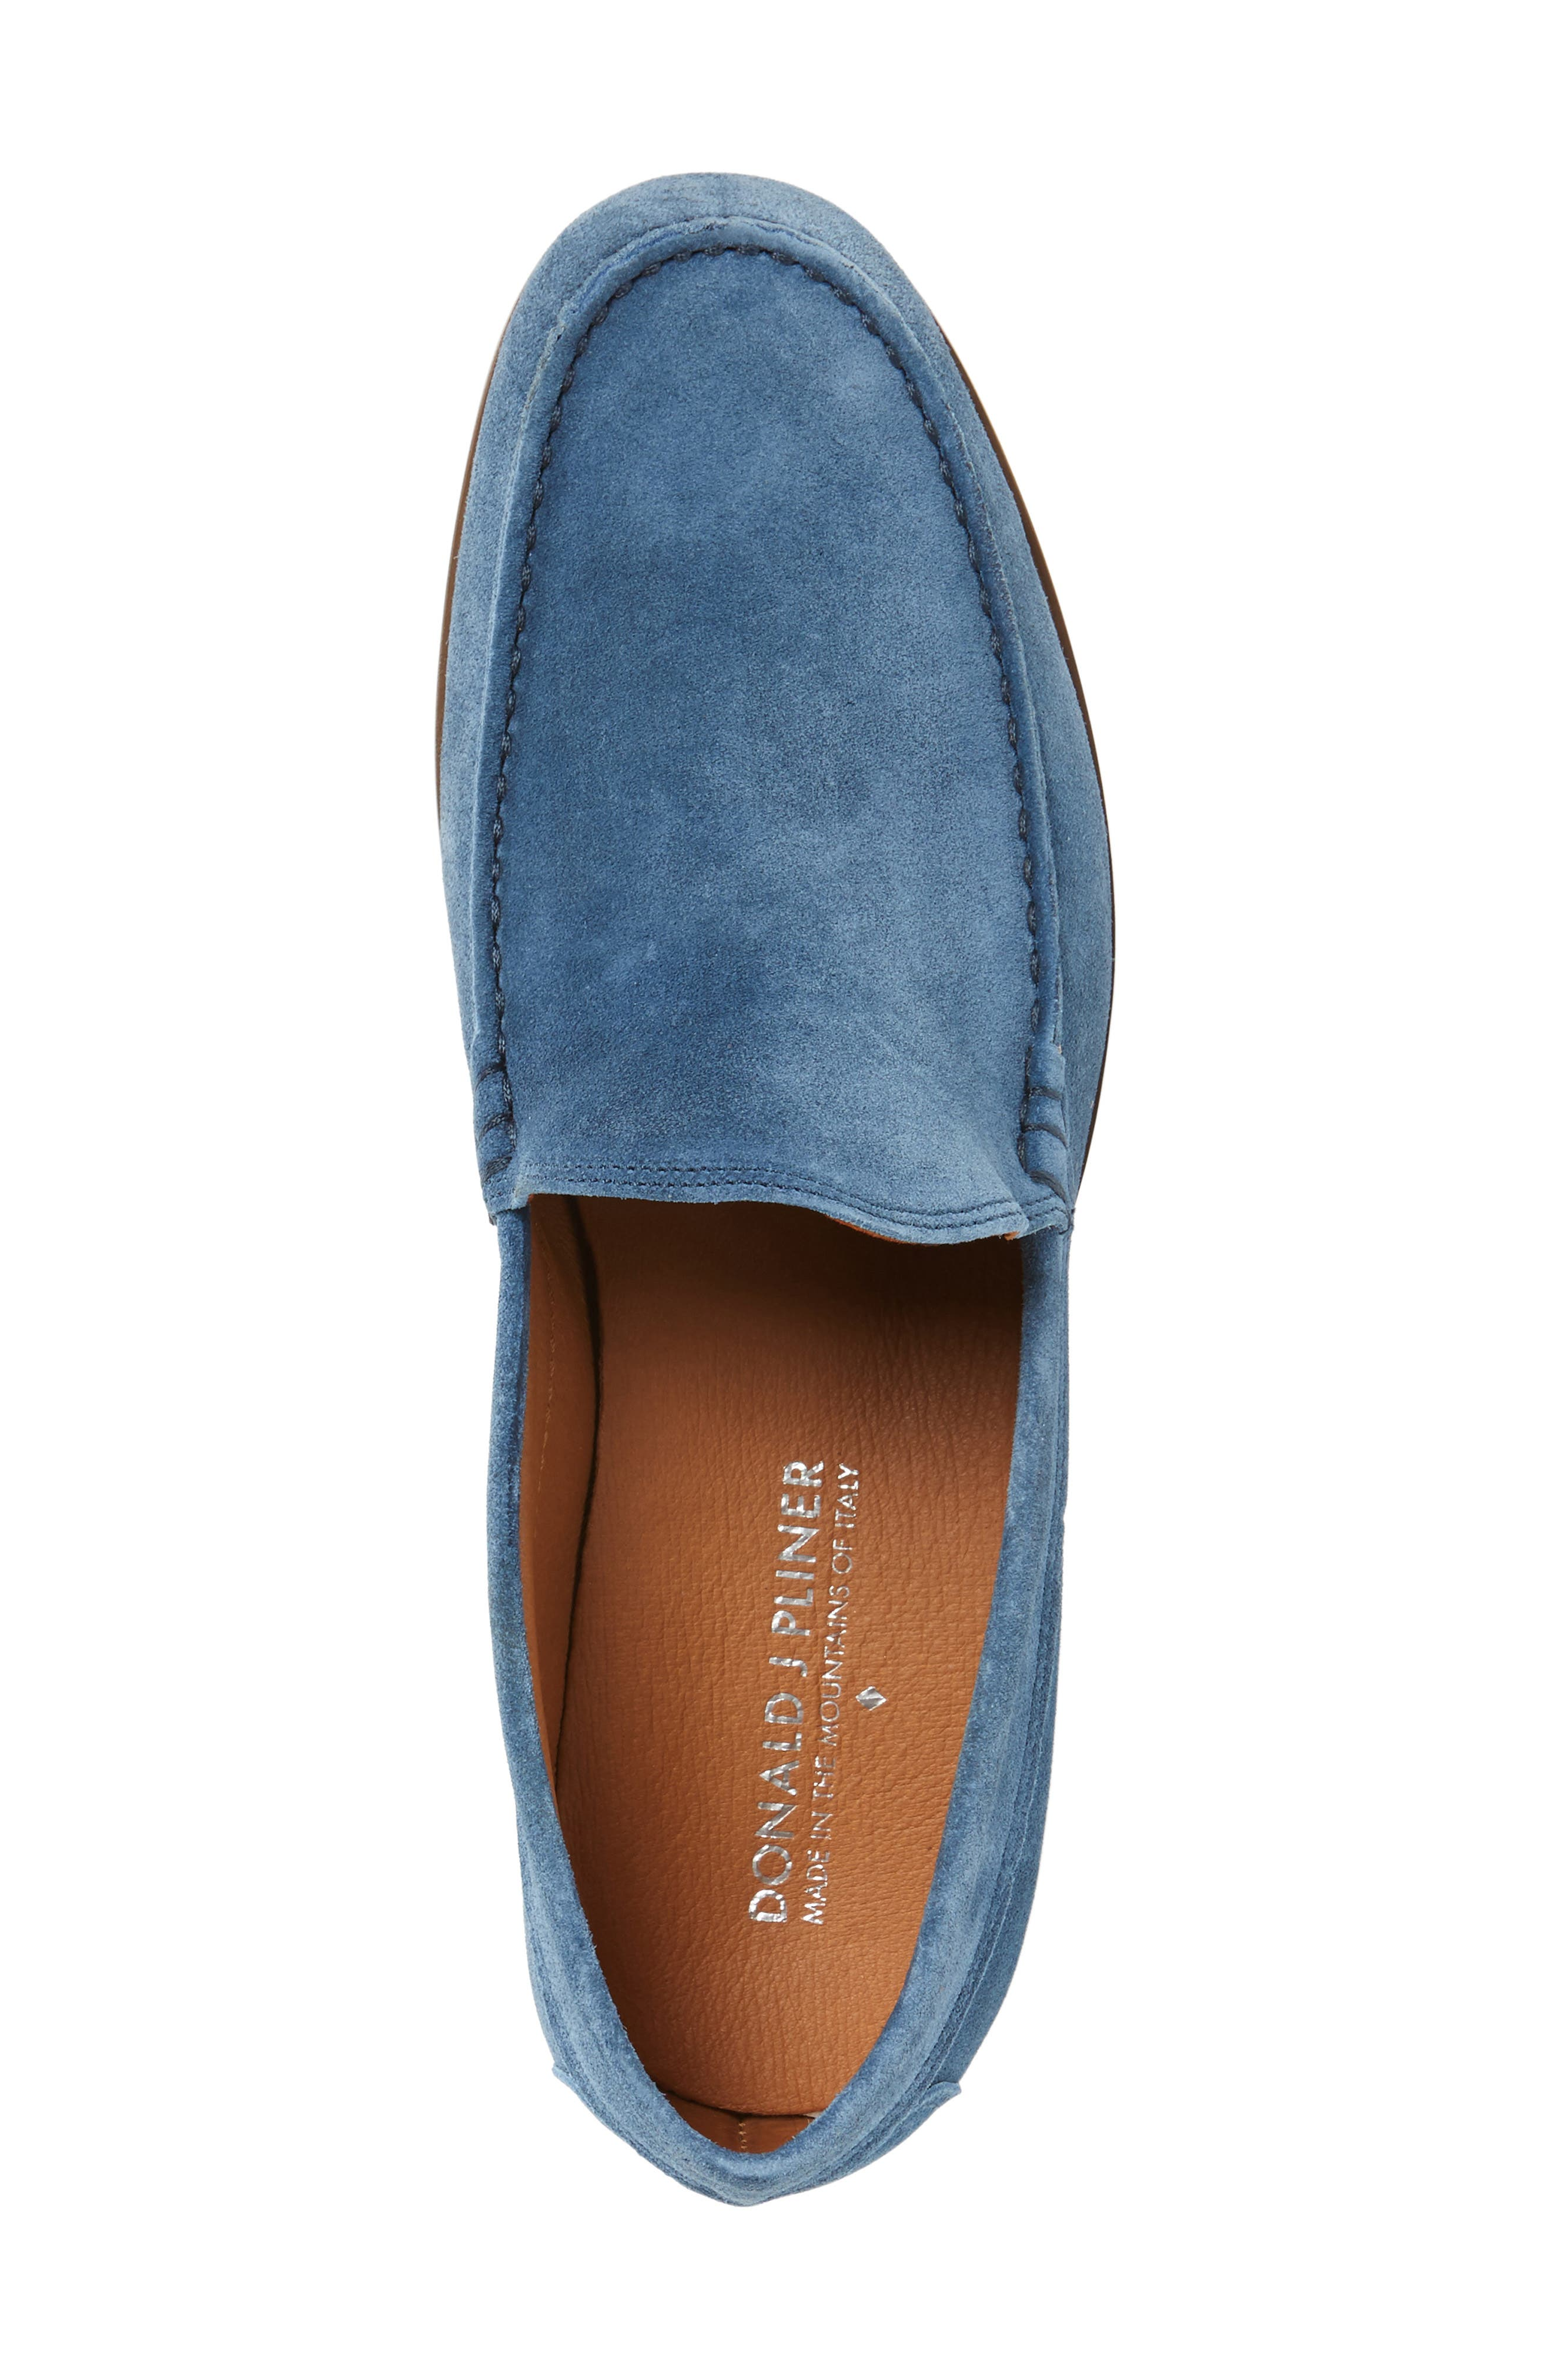 Donald J Pliner 'Nate' Loafer,                             Alternate thumbnail 14, color,